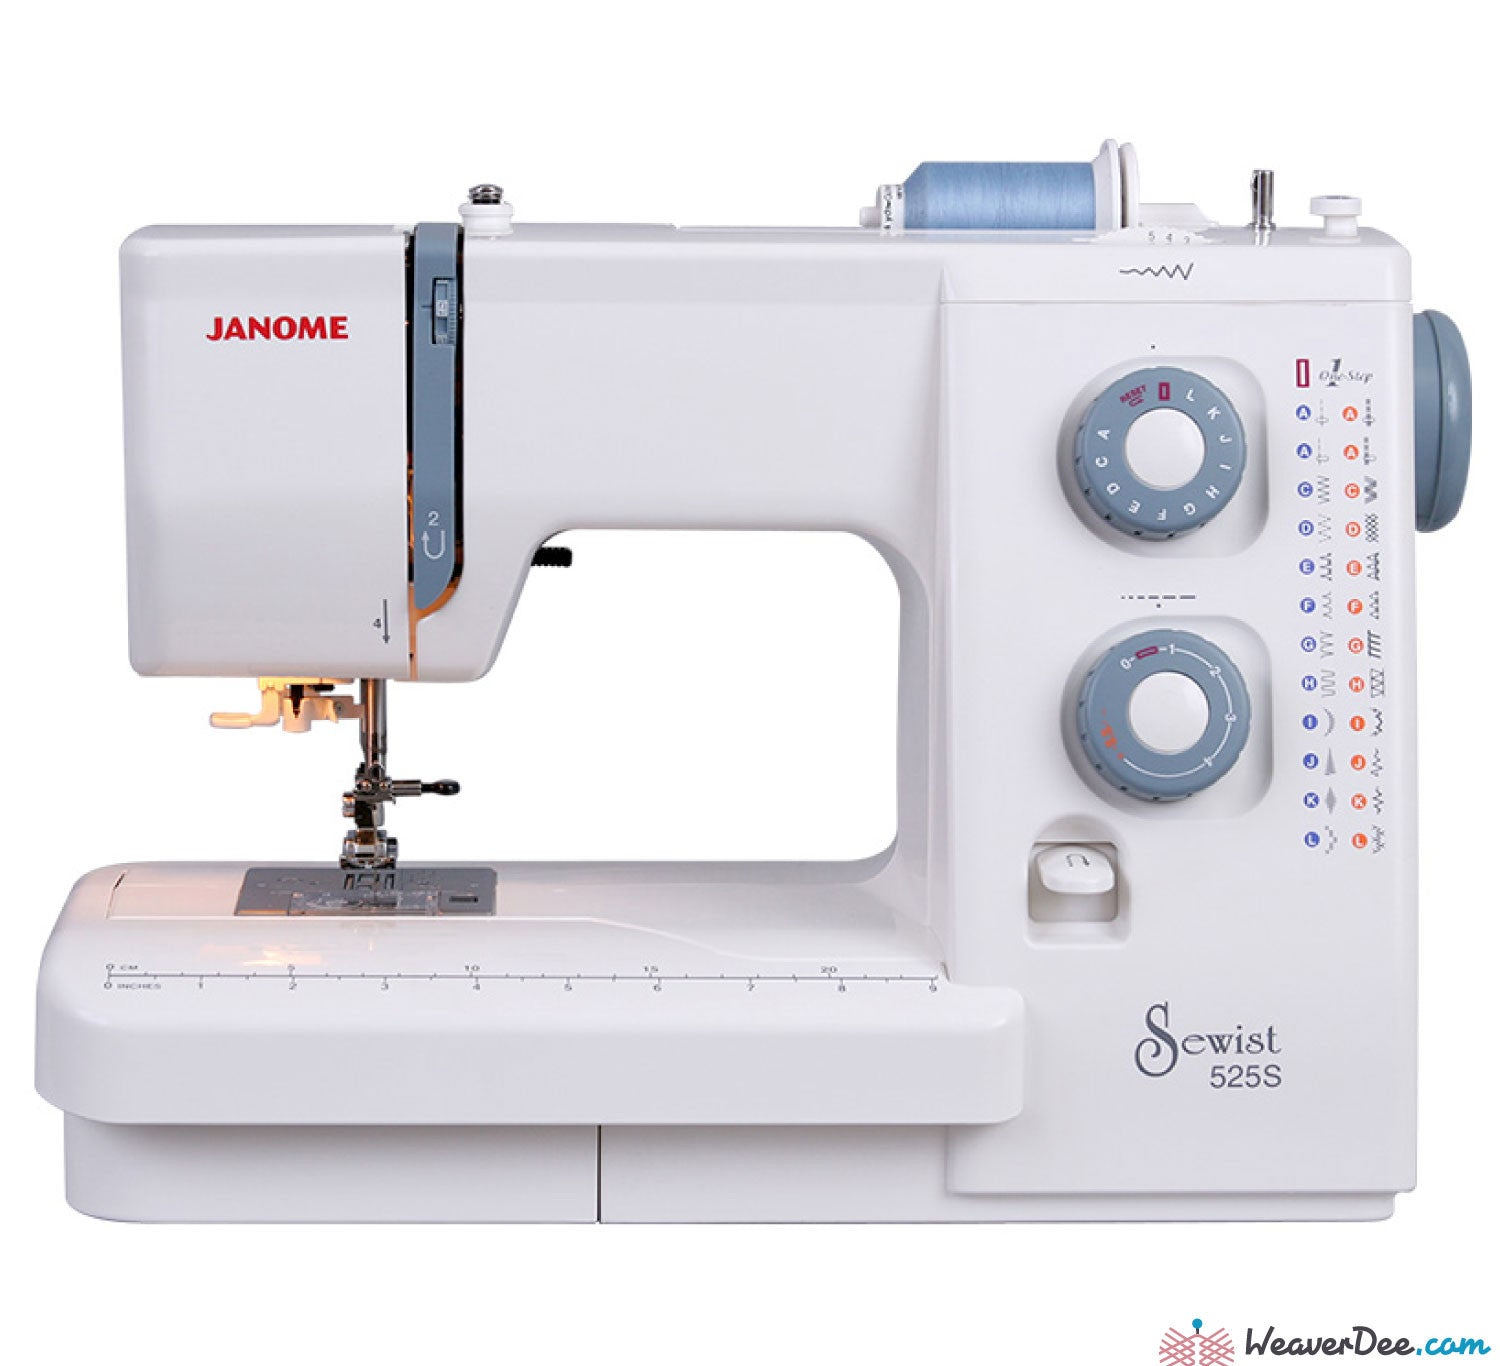 Janome - Janome Sewist 525S Sewing Machine - WeaverDee.com Sewing & Crafts - 1